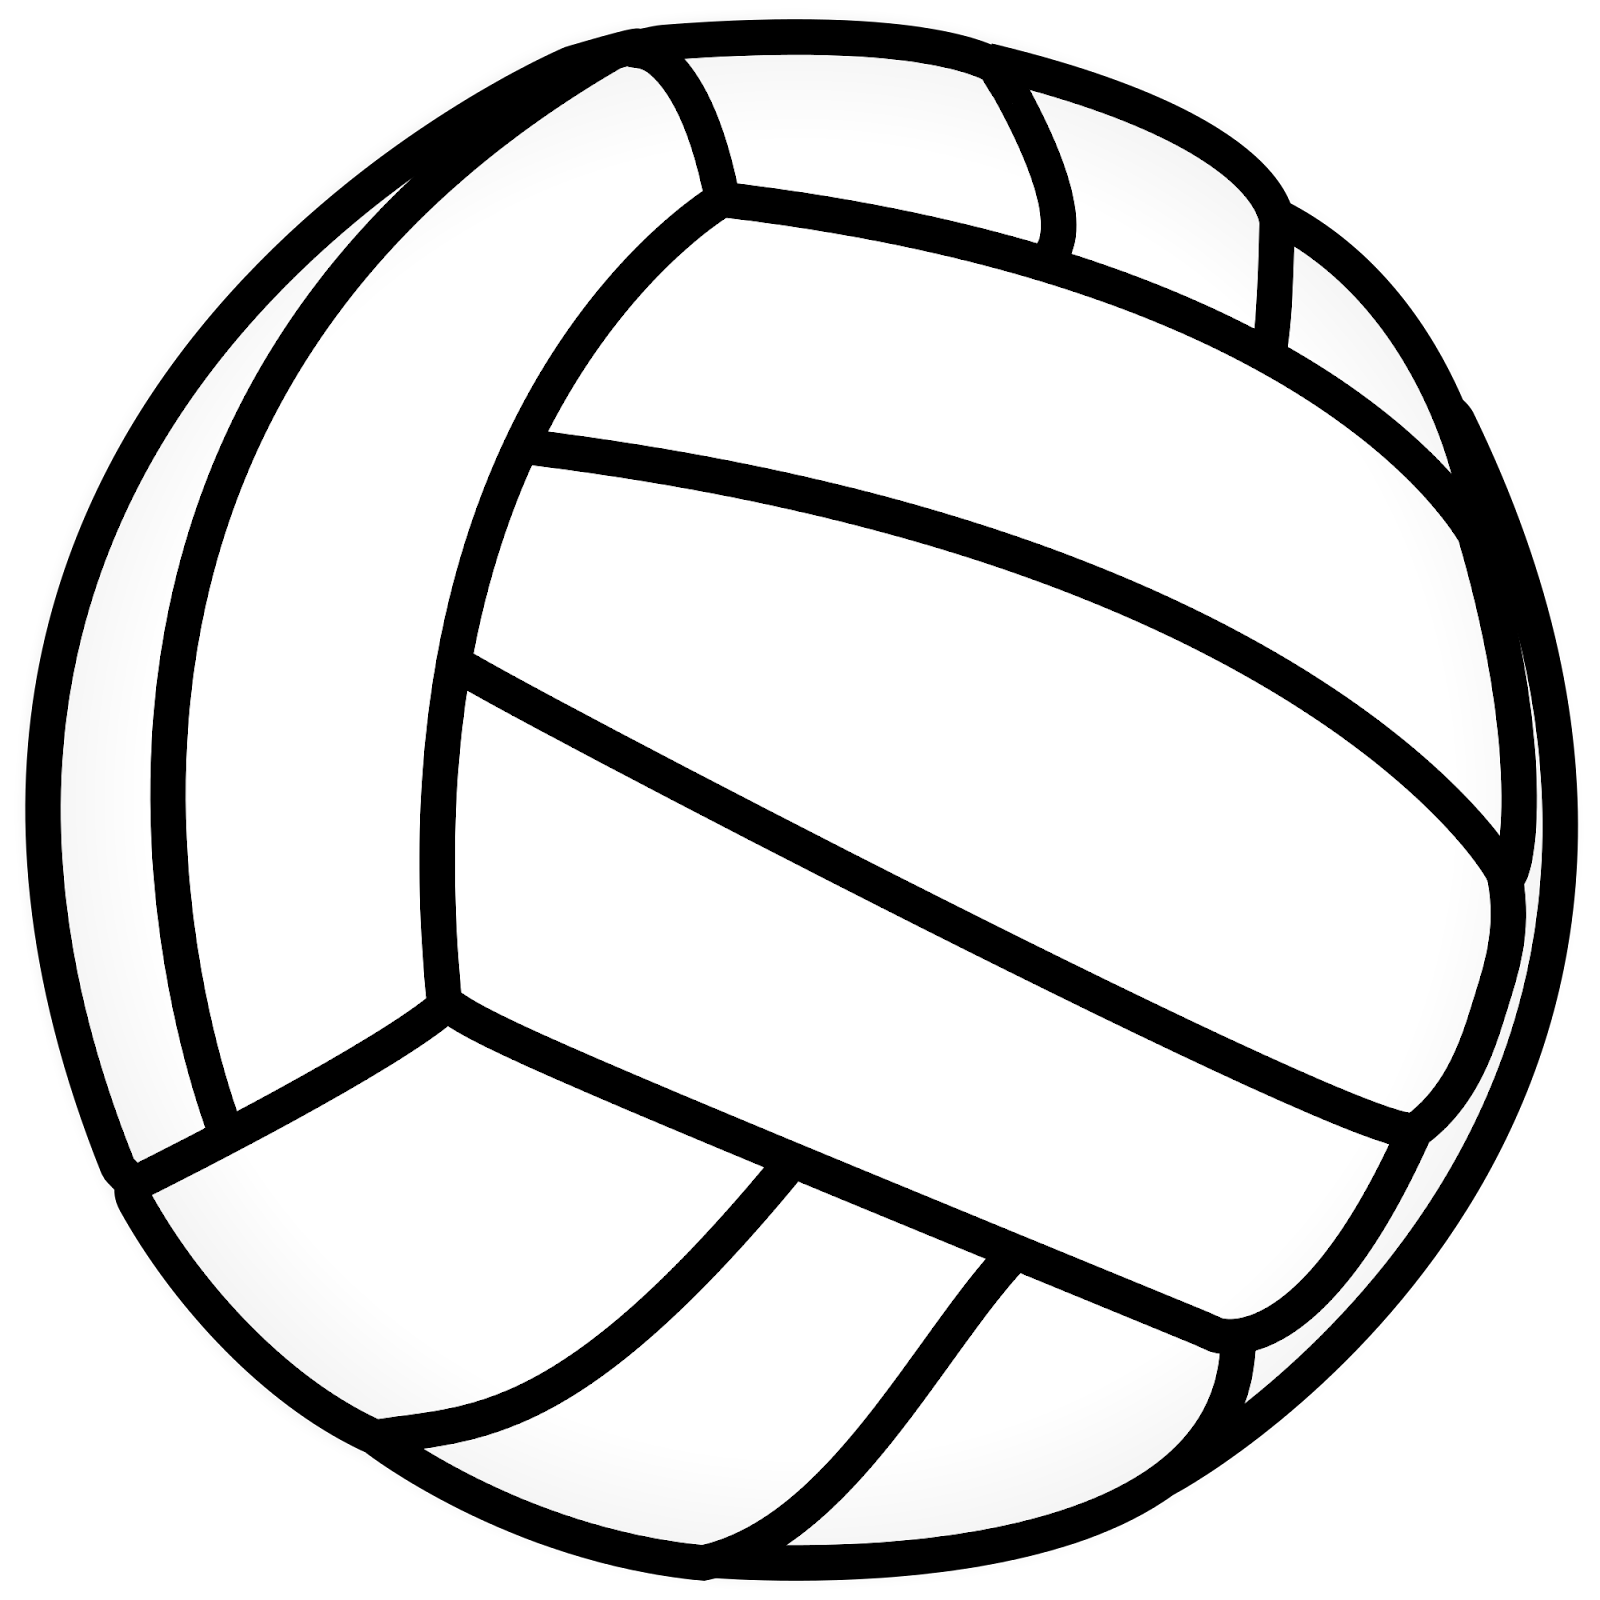 File:Volleyball B.svg - Wikimedia Commons